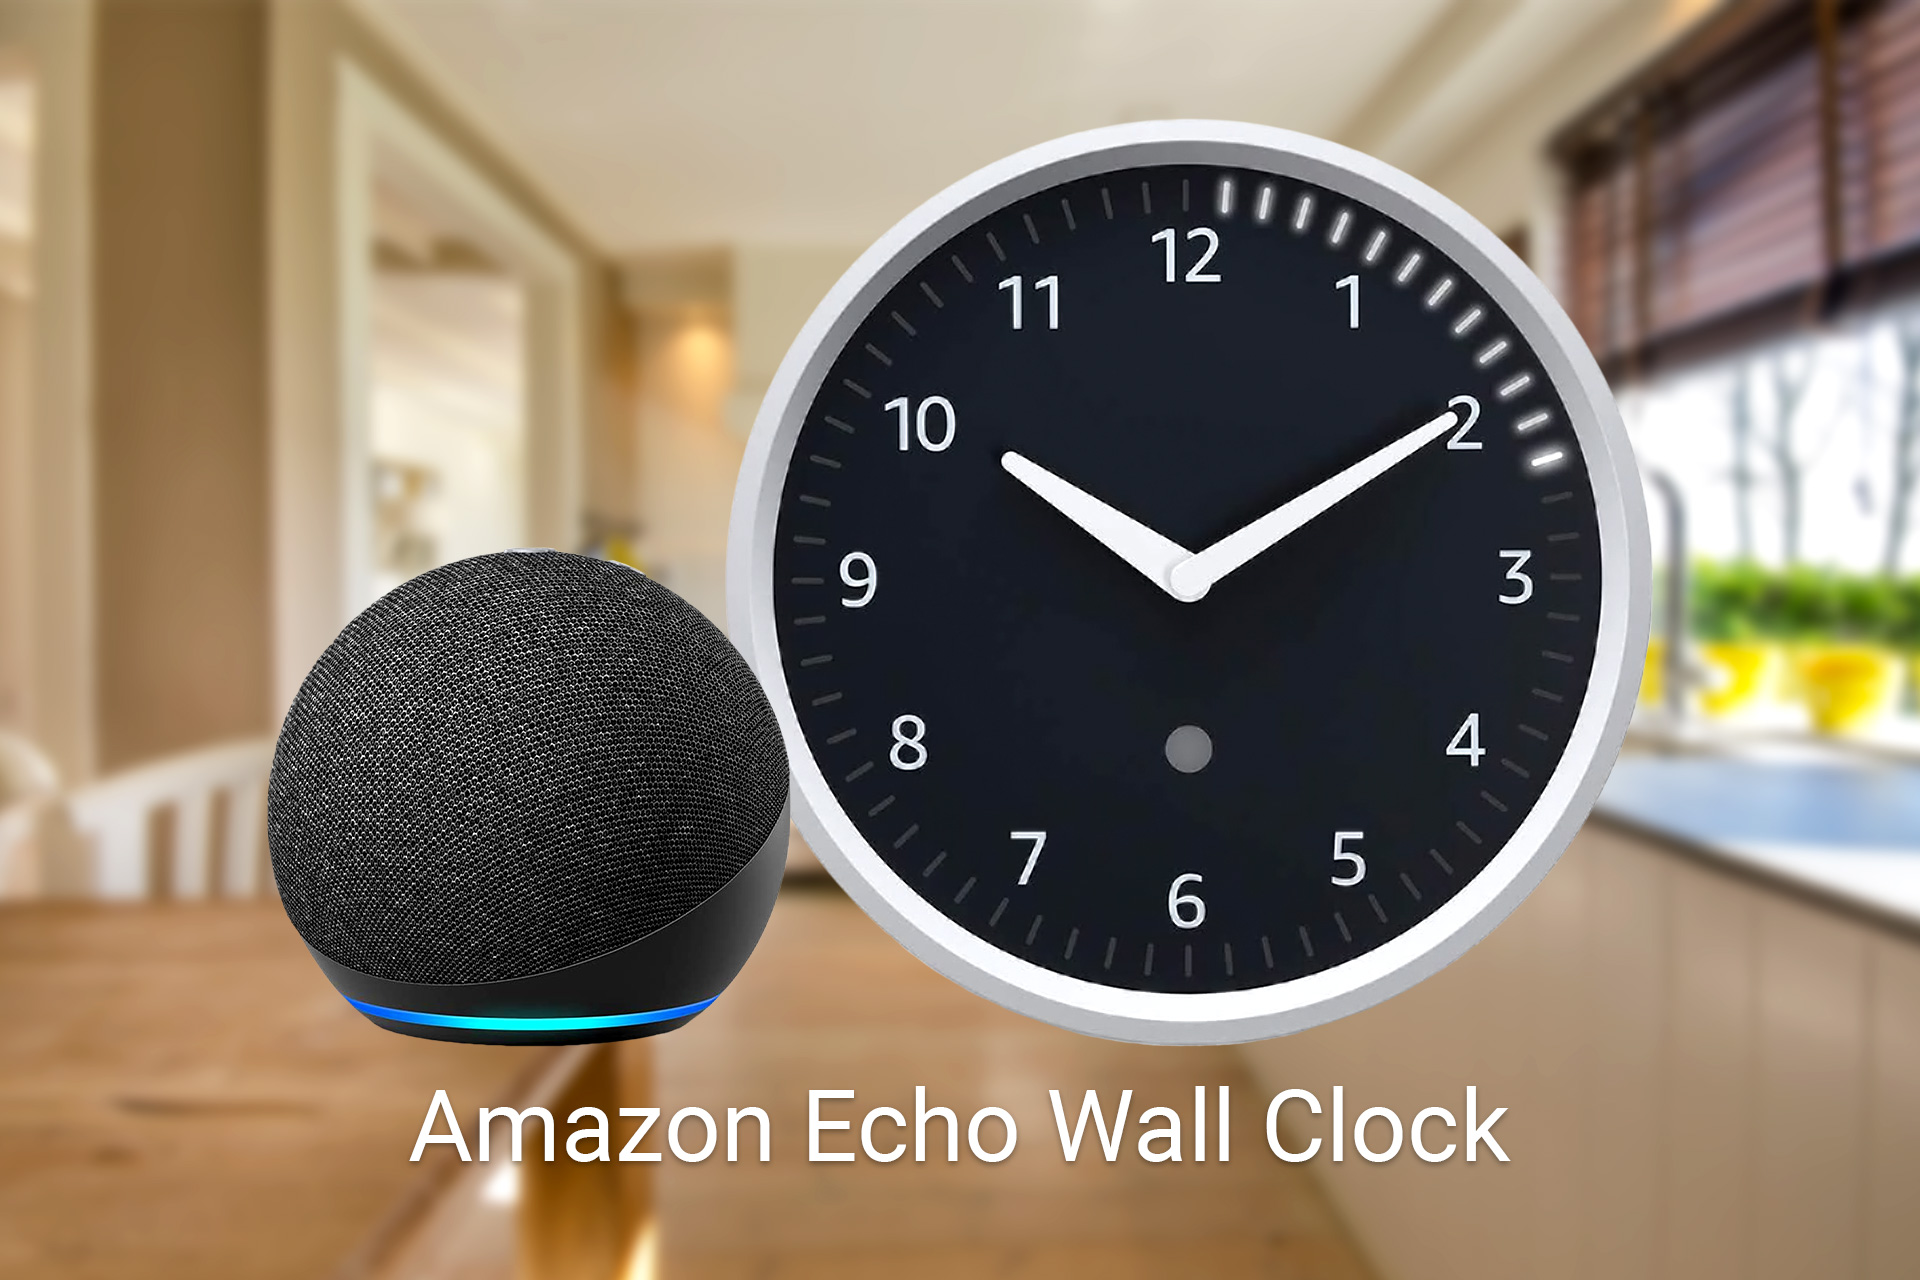 Amazon Echo Wall Clock - Review, at a glance featured image